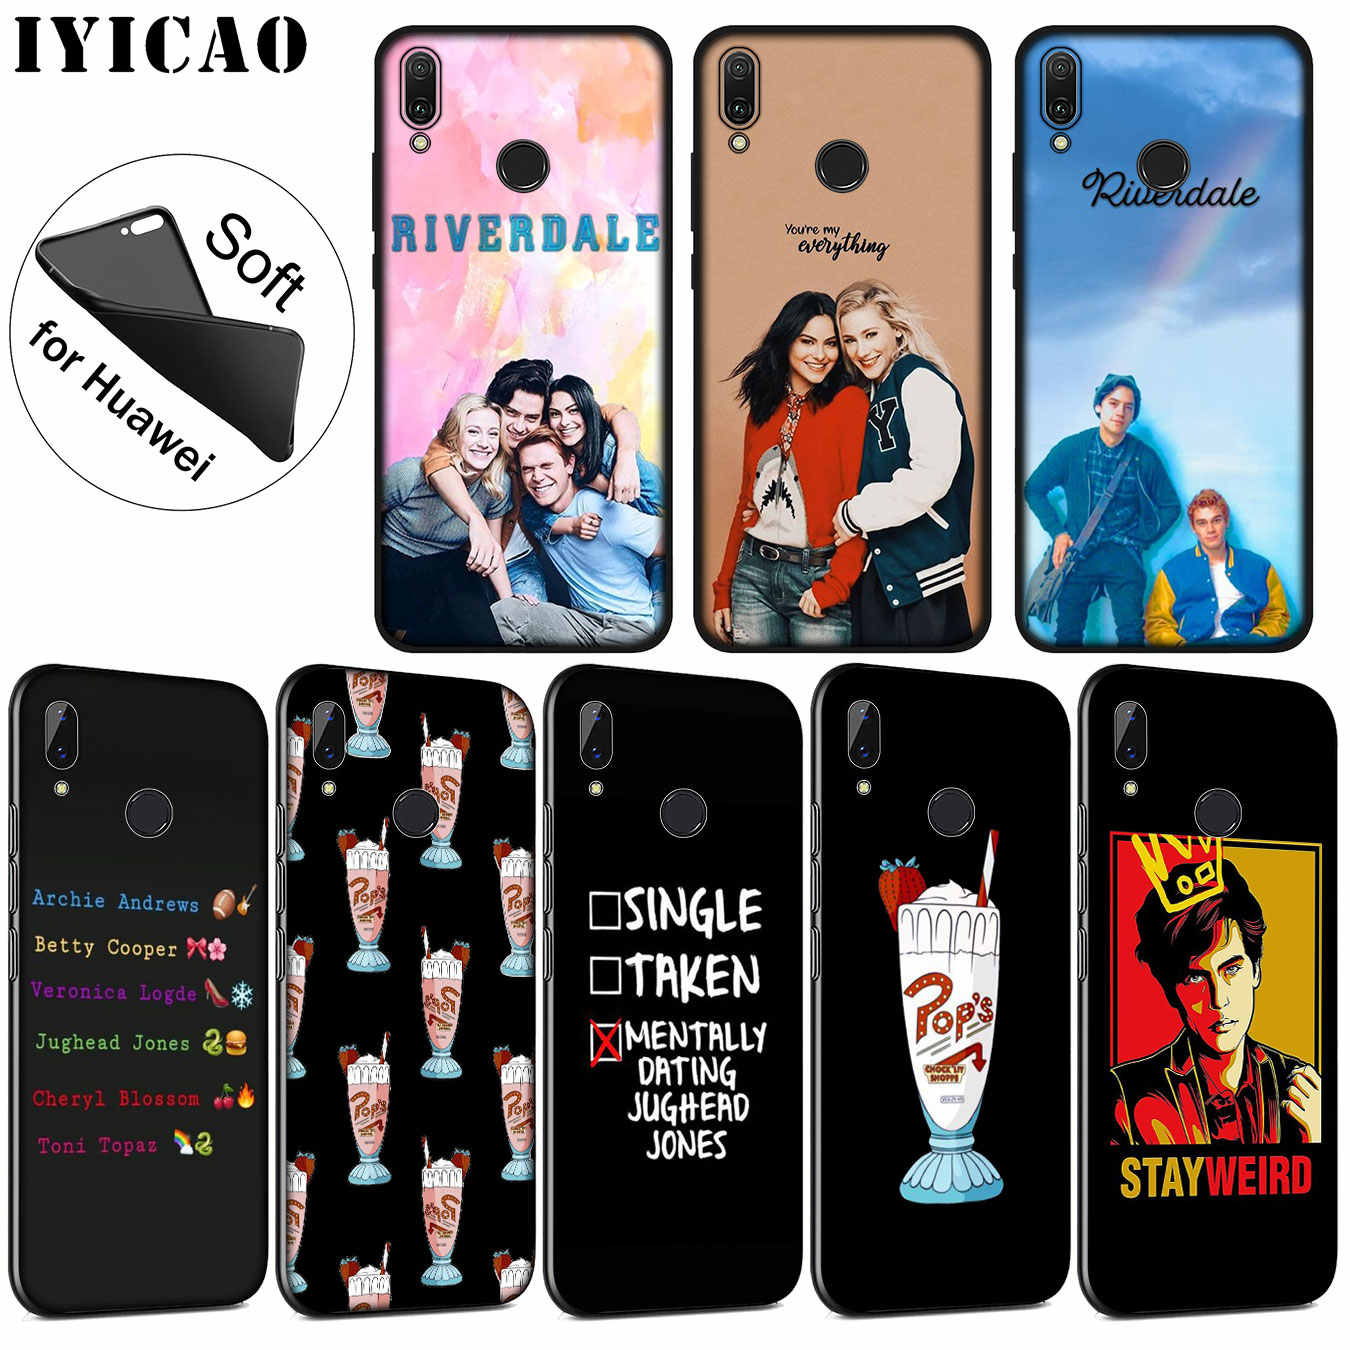 IYICAO Riverdale Soft Silicone Phone Case for Huawei P30 P20 Pro P10 P9 P8 Lite Mini 2017 2016 P smart Z 2019 TPU Black Cover